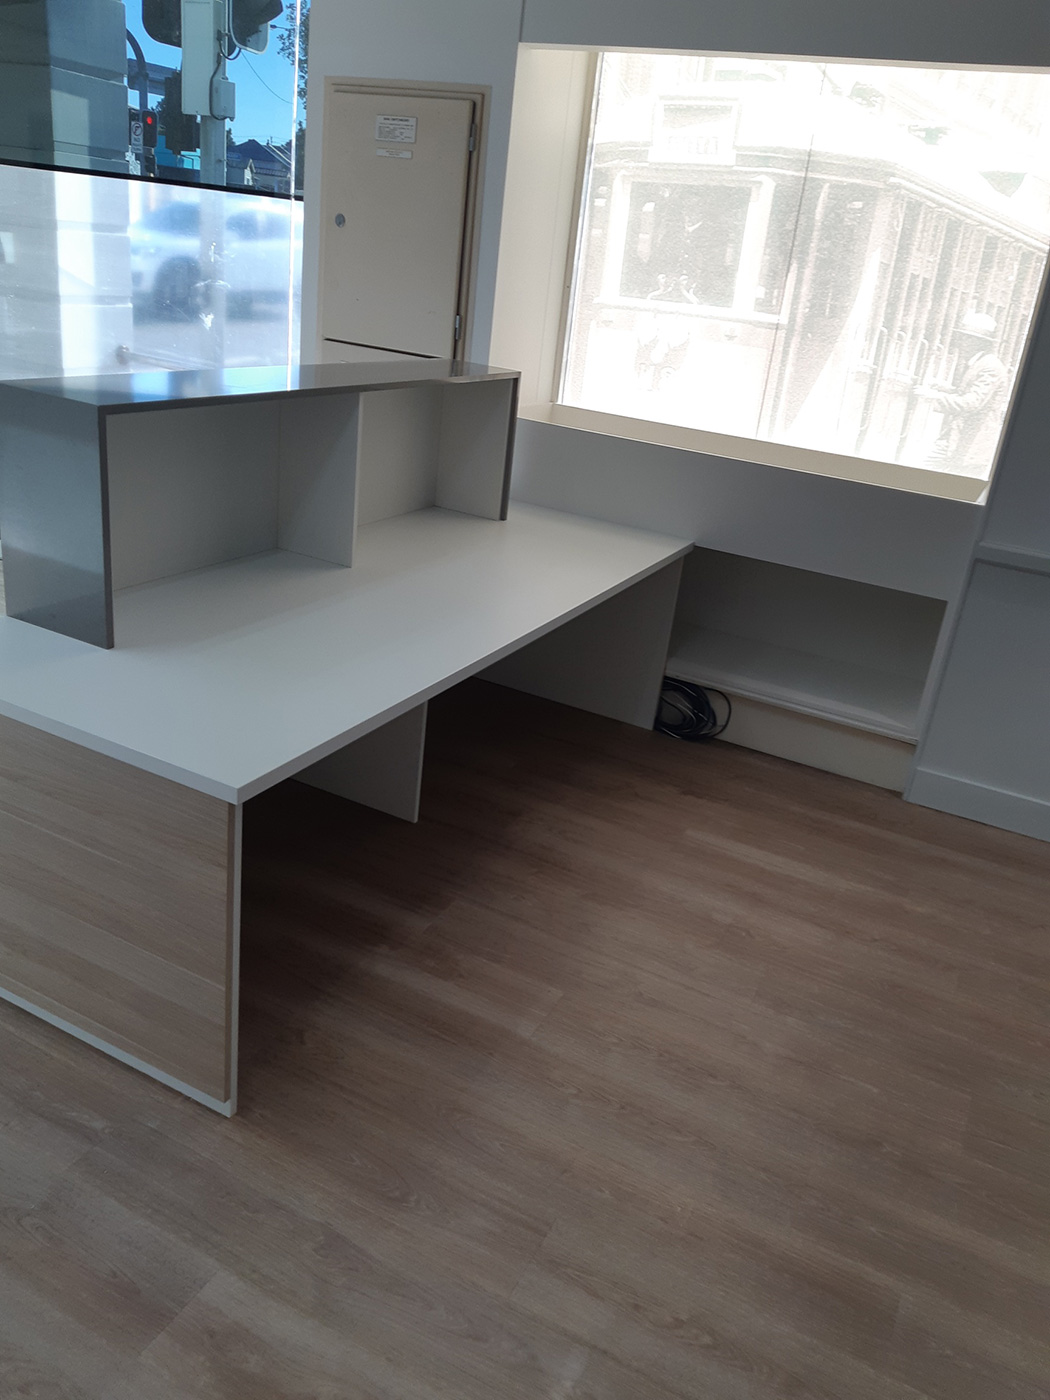 Commercial-Office-Joinery-image-1